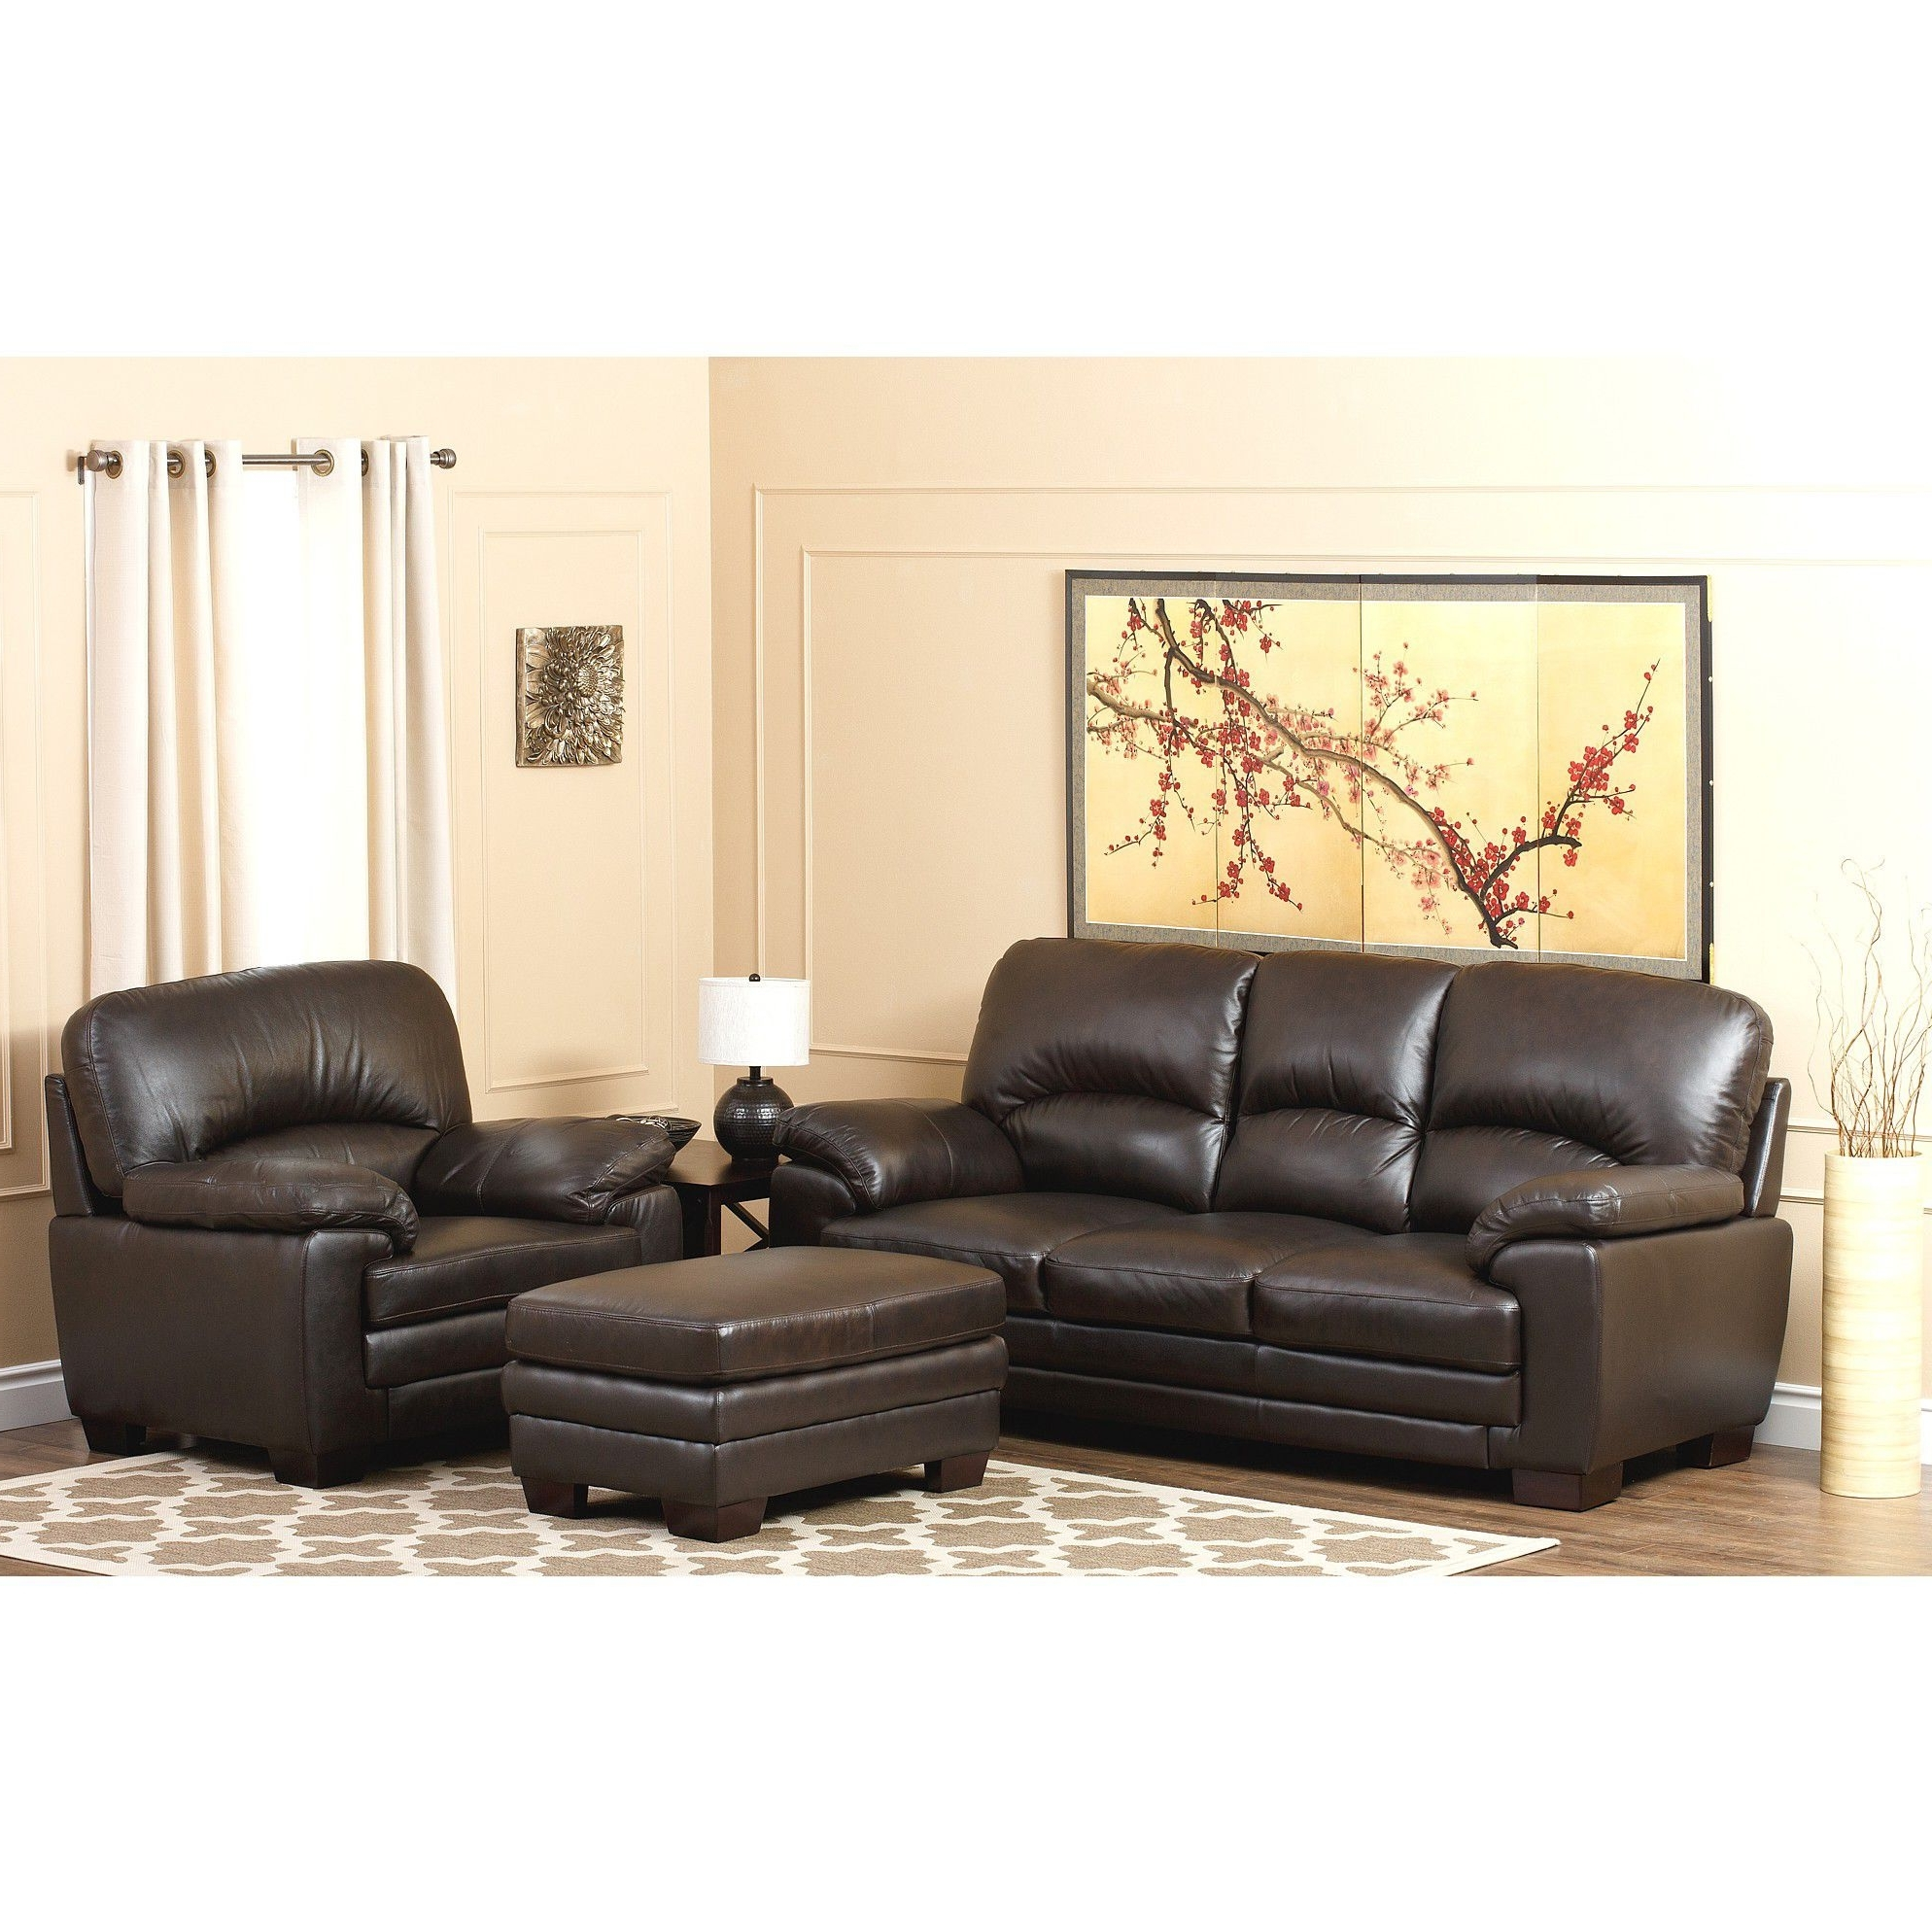 Current Awesome Best Sofas In Orange County Calendrierdujeu Pic For Cheap Pertaining To Orange County Sofas (View 4 of 20)